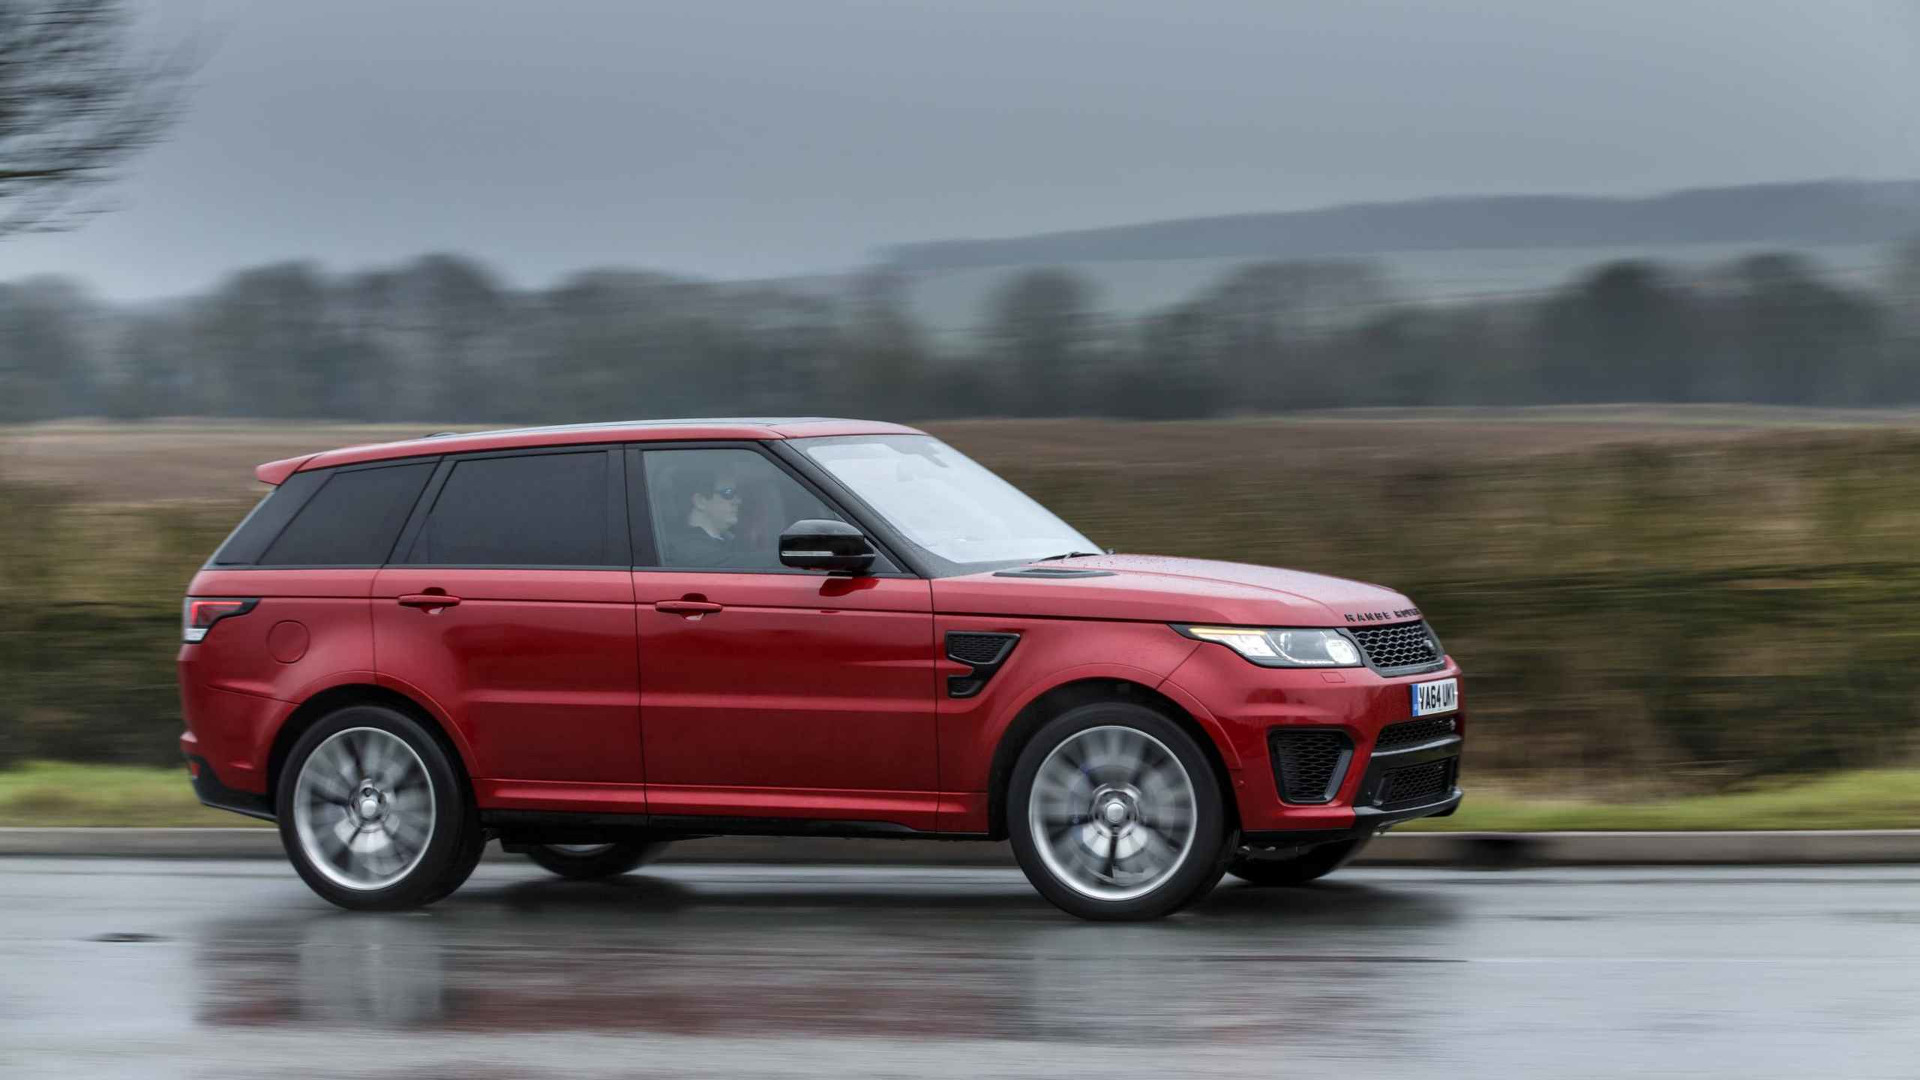 landrover and rover sport photo test range driver svr s land car review supercharged original reviews price